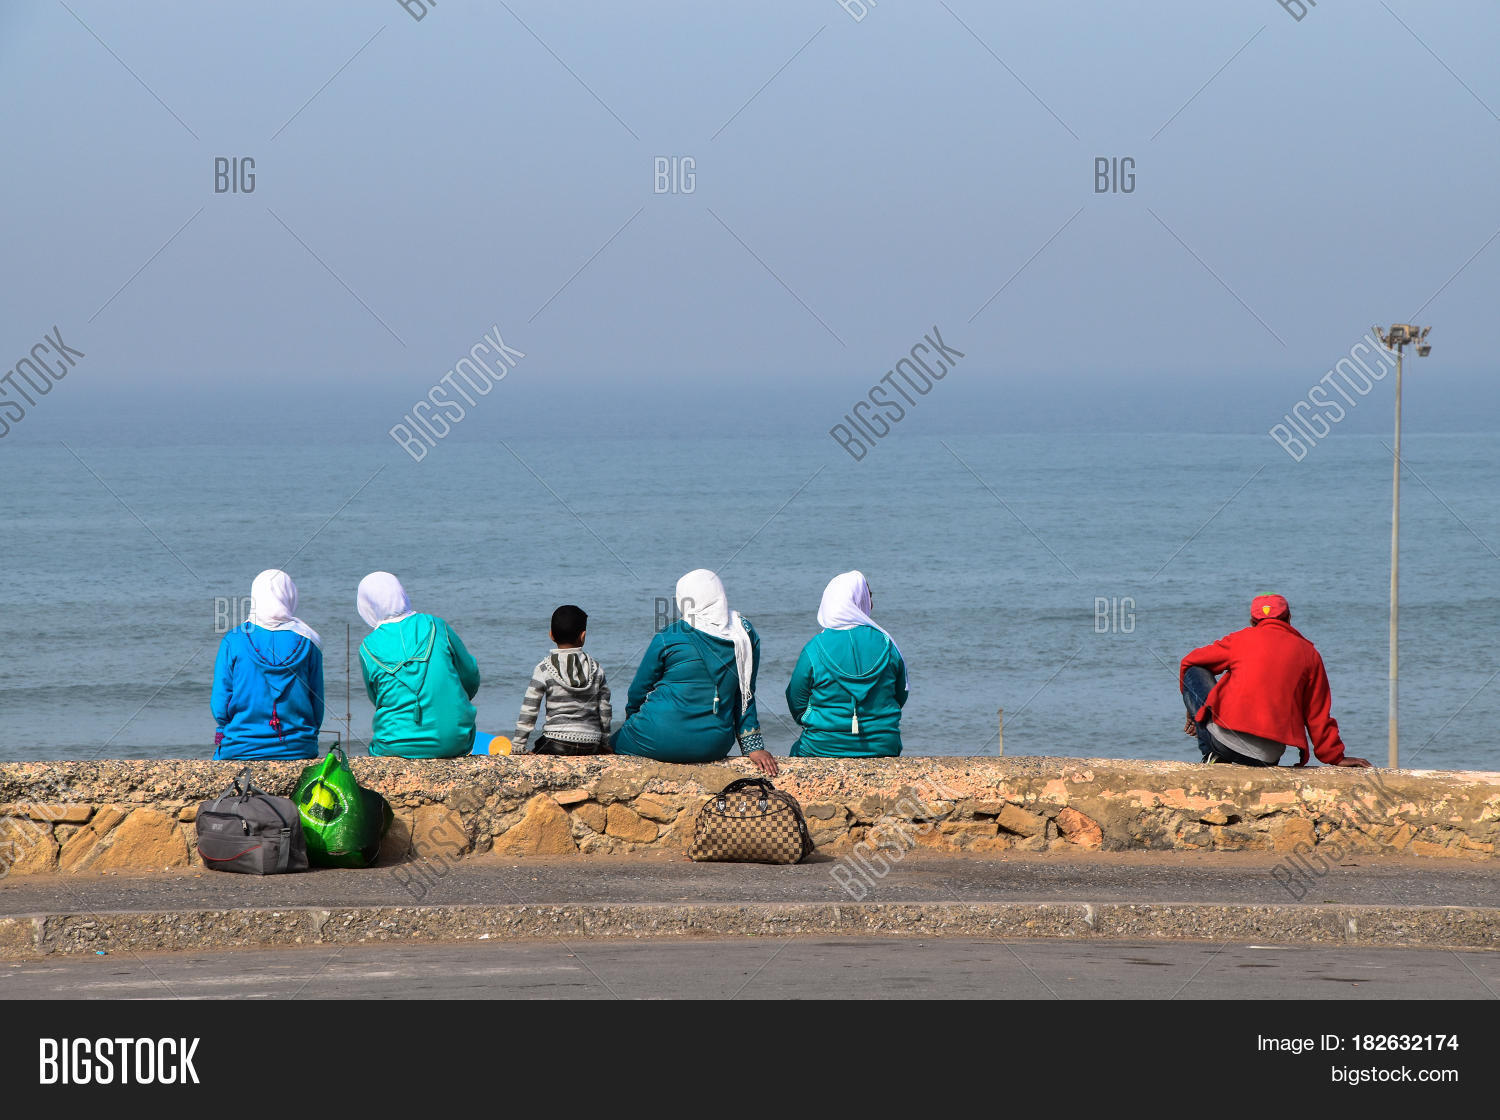 vanderbilt beach single muslim girls Muslim hyderabad matrimonial muslims are a significant group in hyderabad with more than 40% of its population made up of various muslim communities.